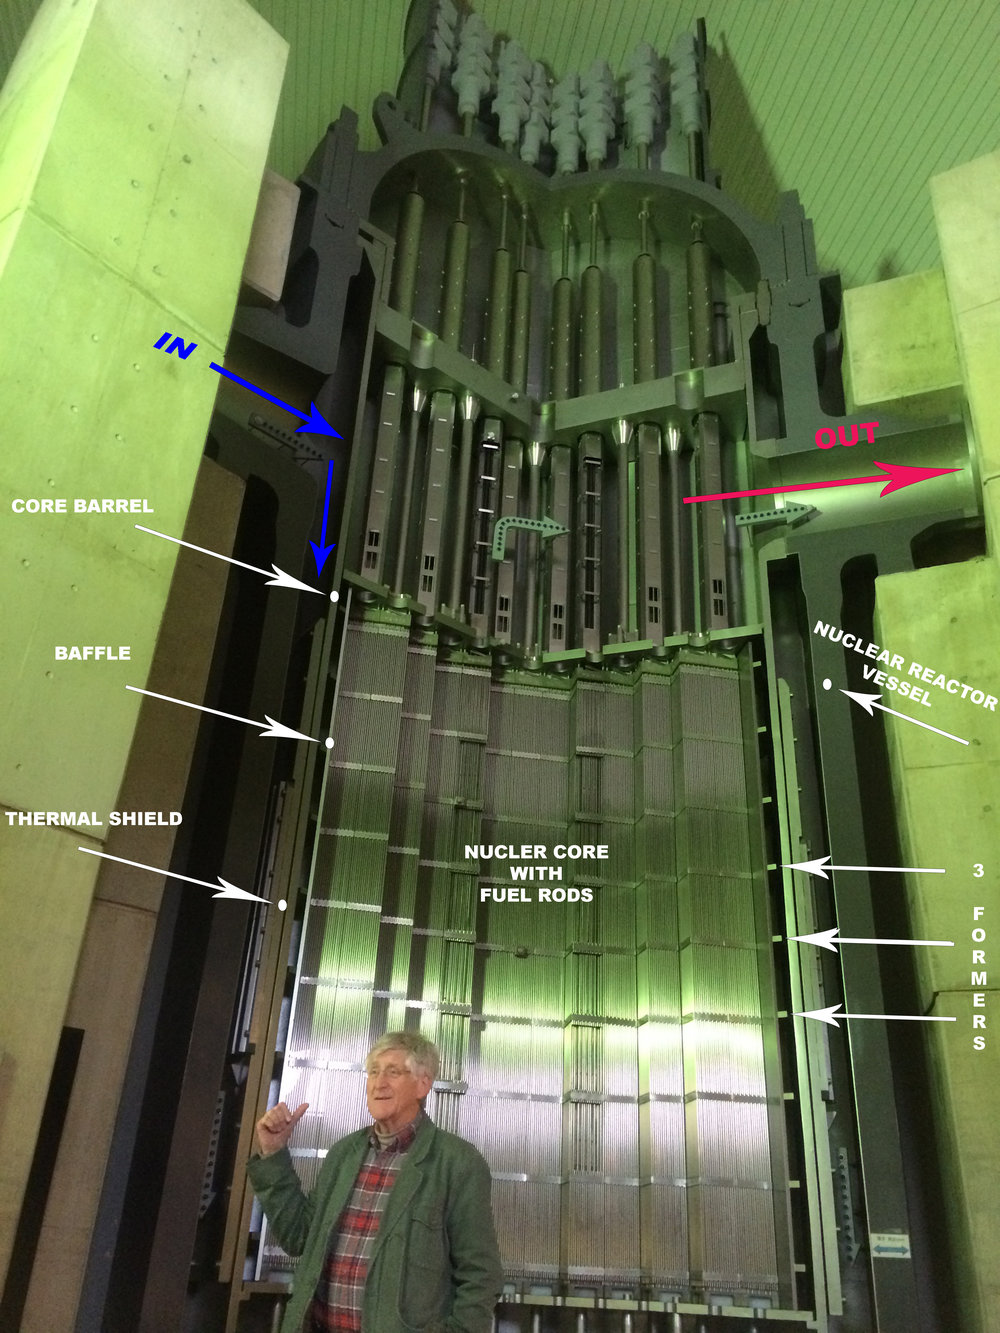 Arnie Gundersen standing adjacent to a model of the Cross Section of a Reactor Vessel in Japan